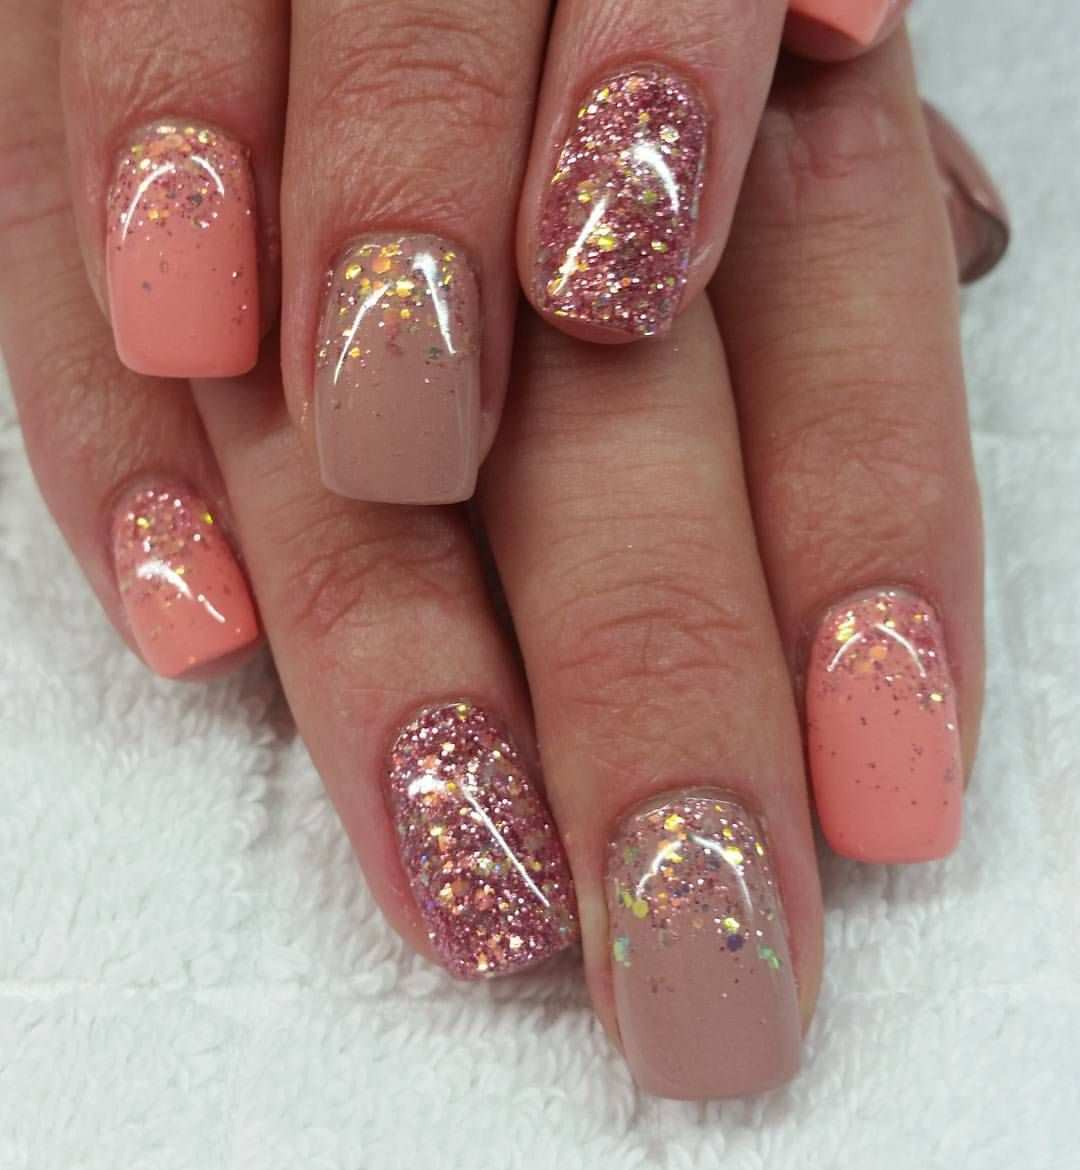 Fingernagel Gelnagel Naturnagel Fullcover Glitzer Naildesigns Carmenirmscher Natural Nails Nails Gel Nails